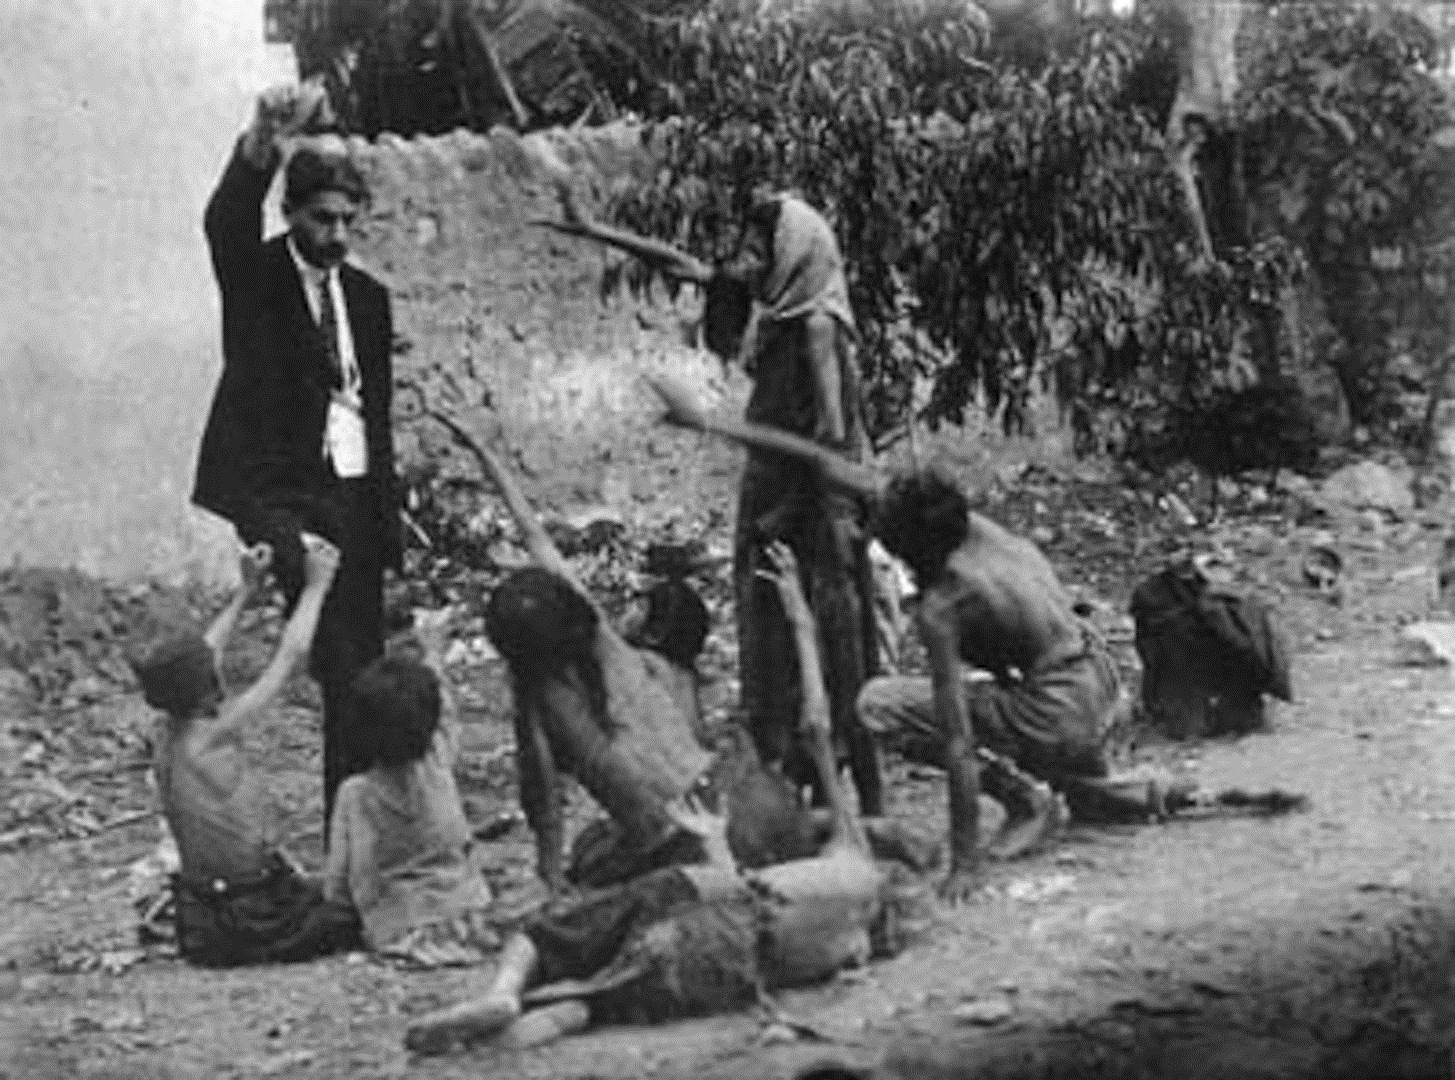 Turkish official teasing starved Armenian children by showing bread during the Armenian Genocide, 1915